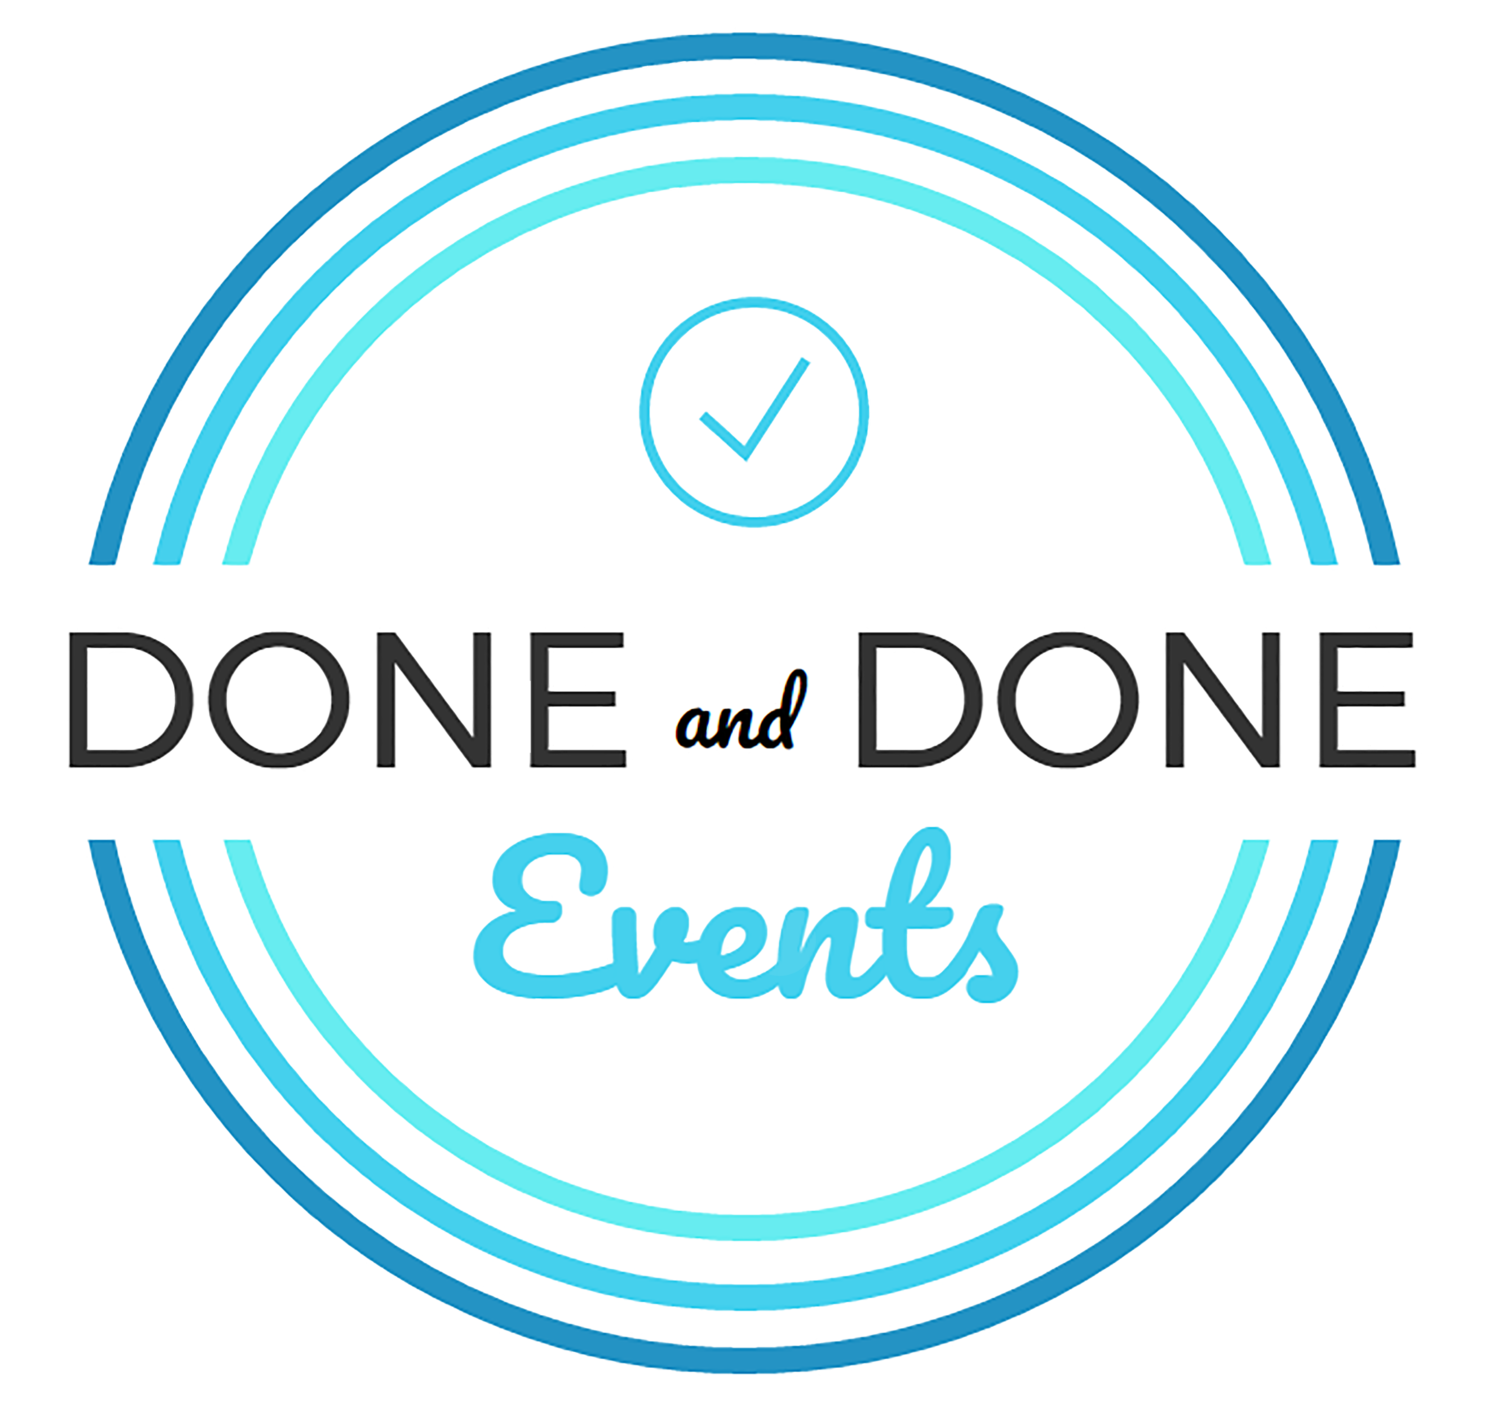 Done and Done Events